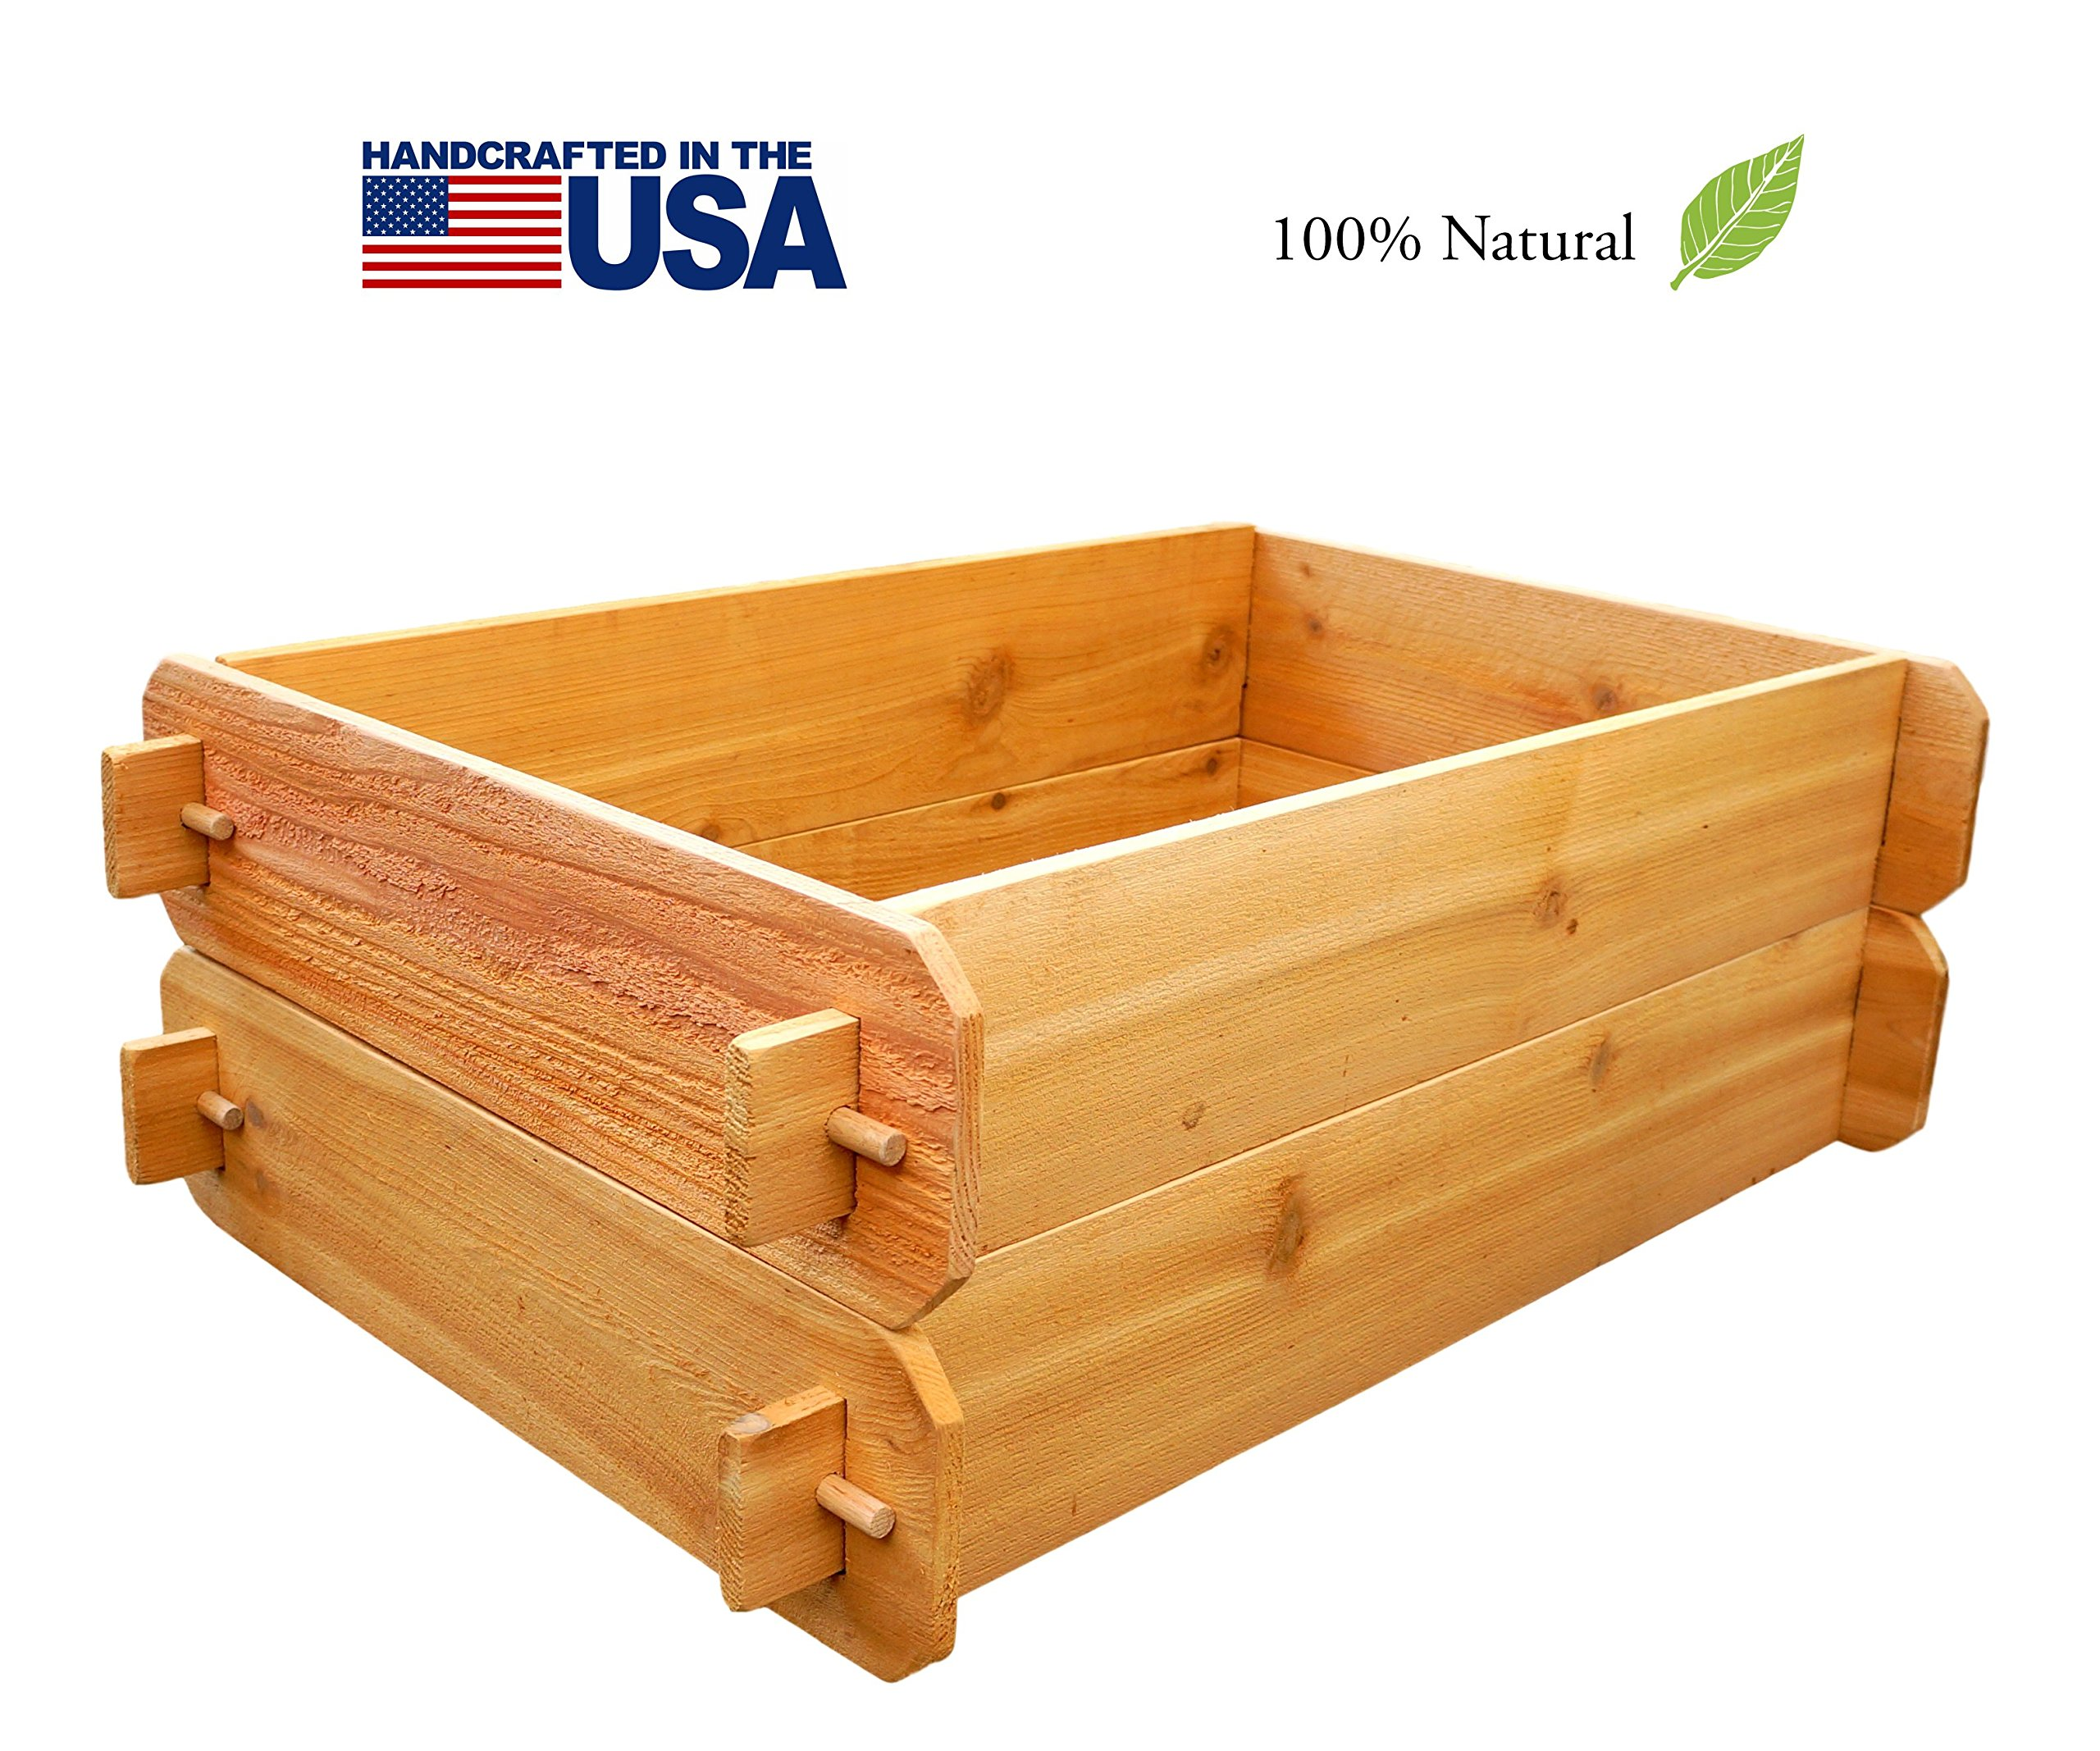 Timberlane Gardens Raised Bed Kit Double Deep (Two 2x3) Western Red Cedar with Mortise and Tenon Joinery 2 Feet x 3 Feet by Timberlane Gardens